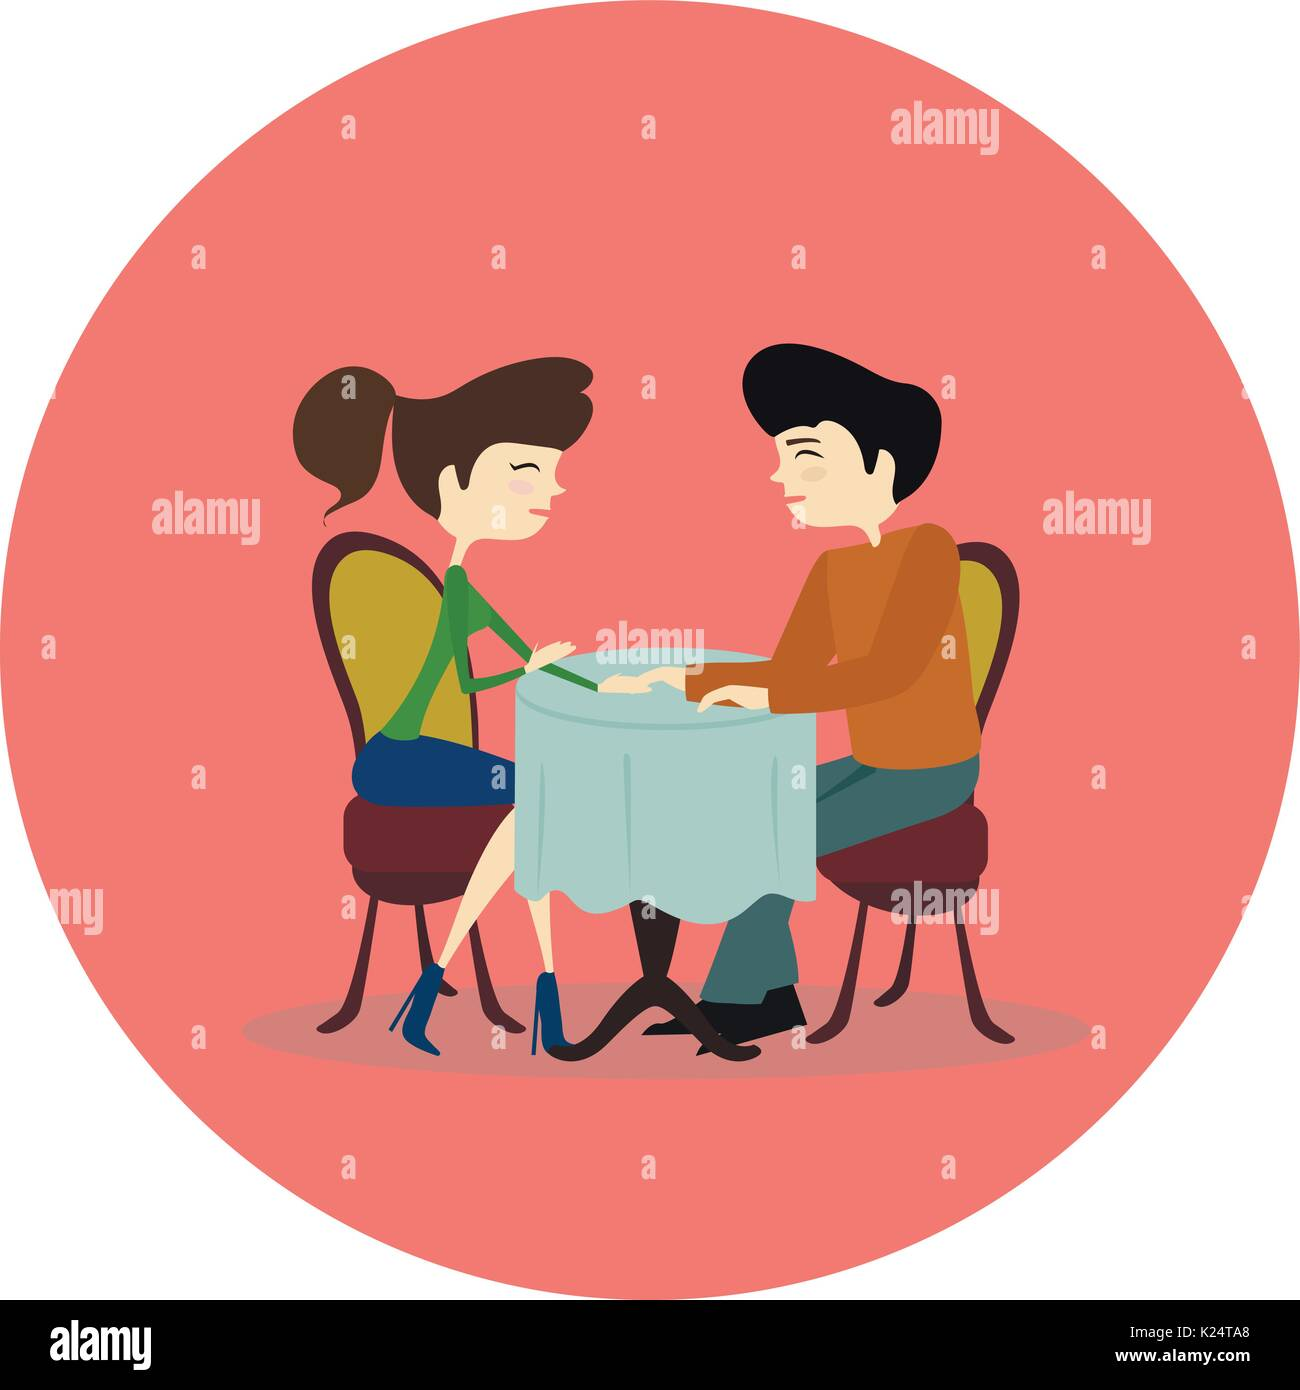 Questions asked at speed dating